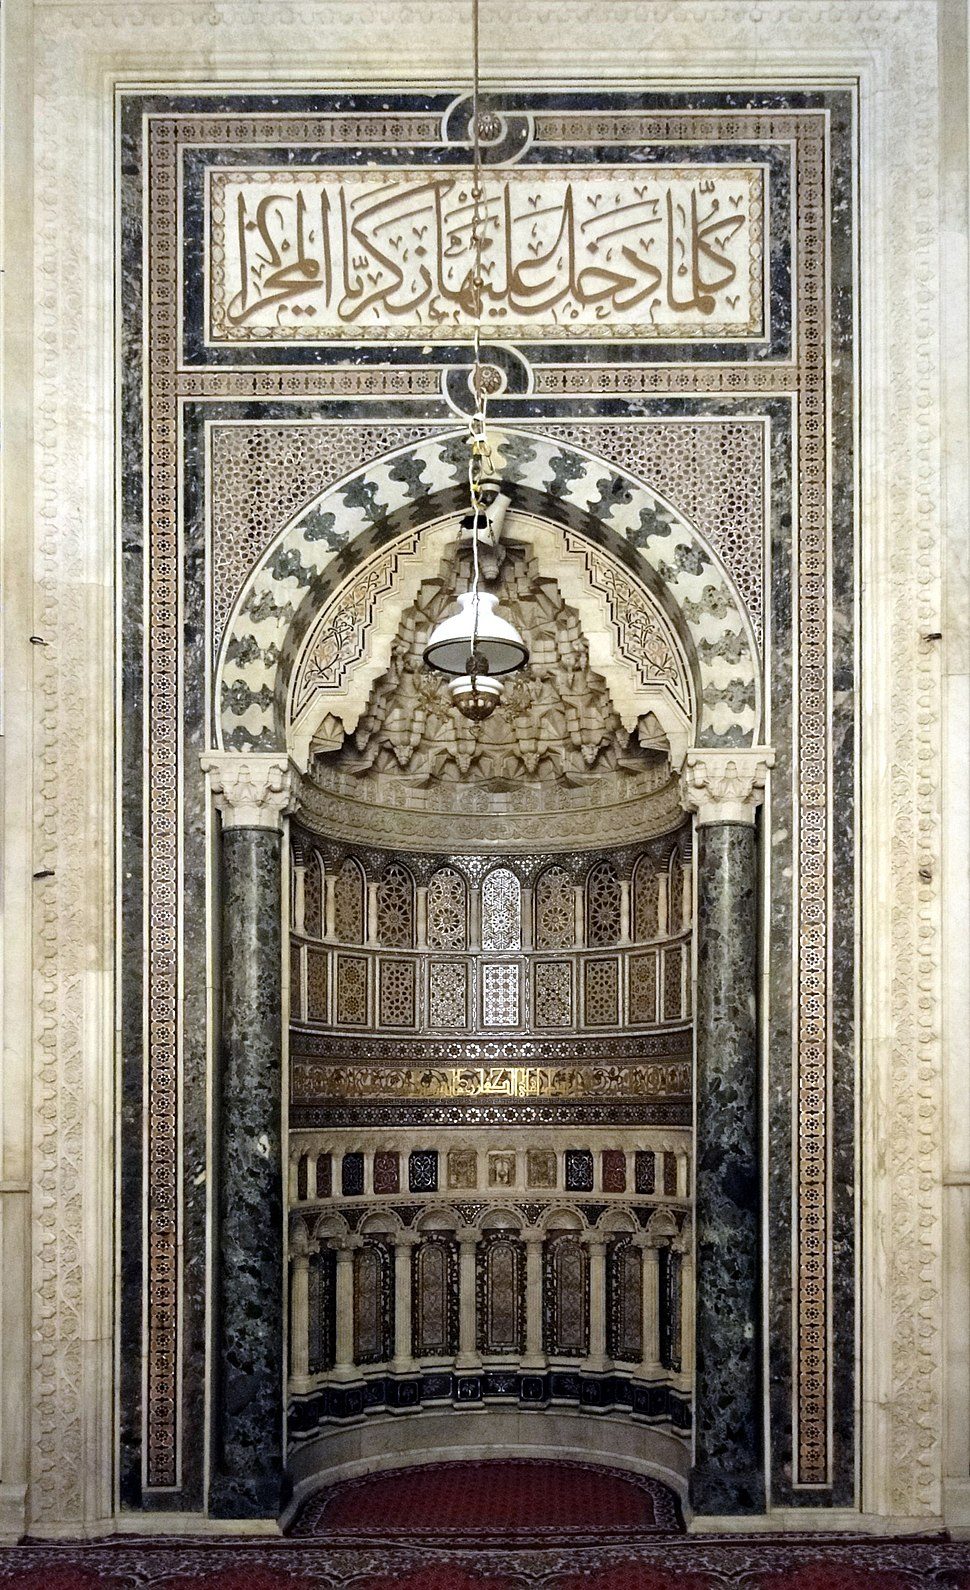 Mihrab at the Umayyad Mosque in Damascus, Syria